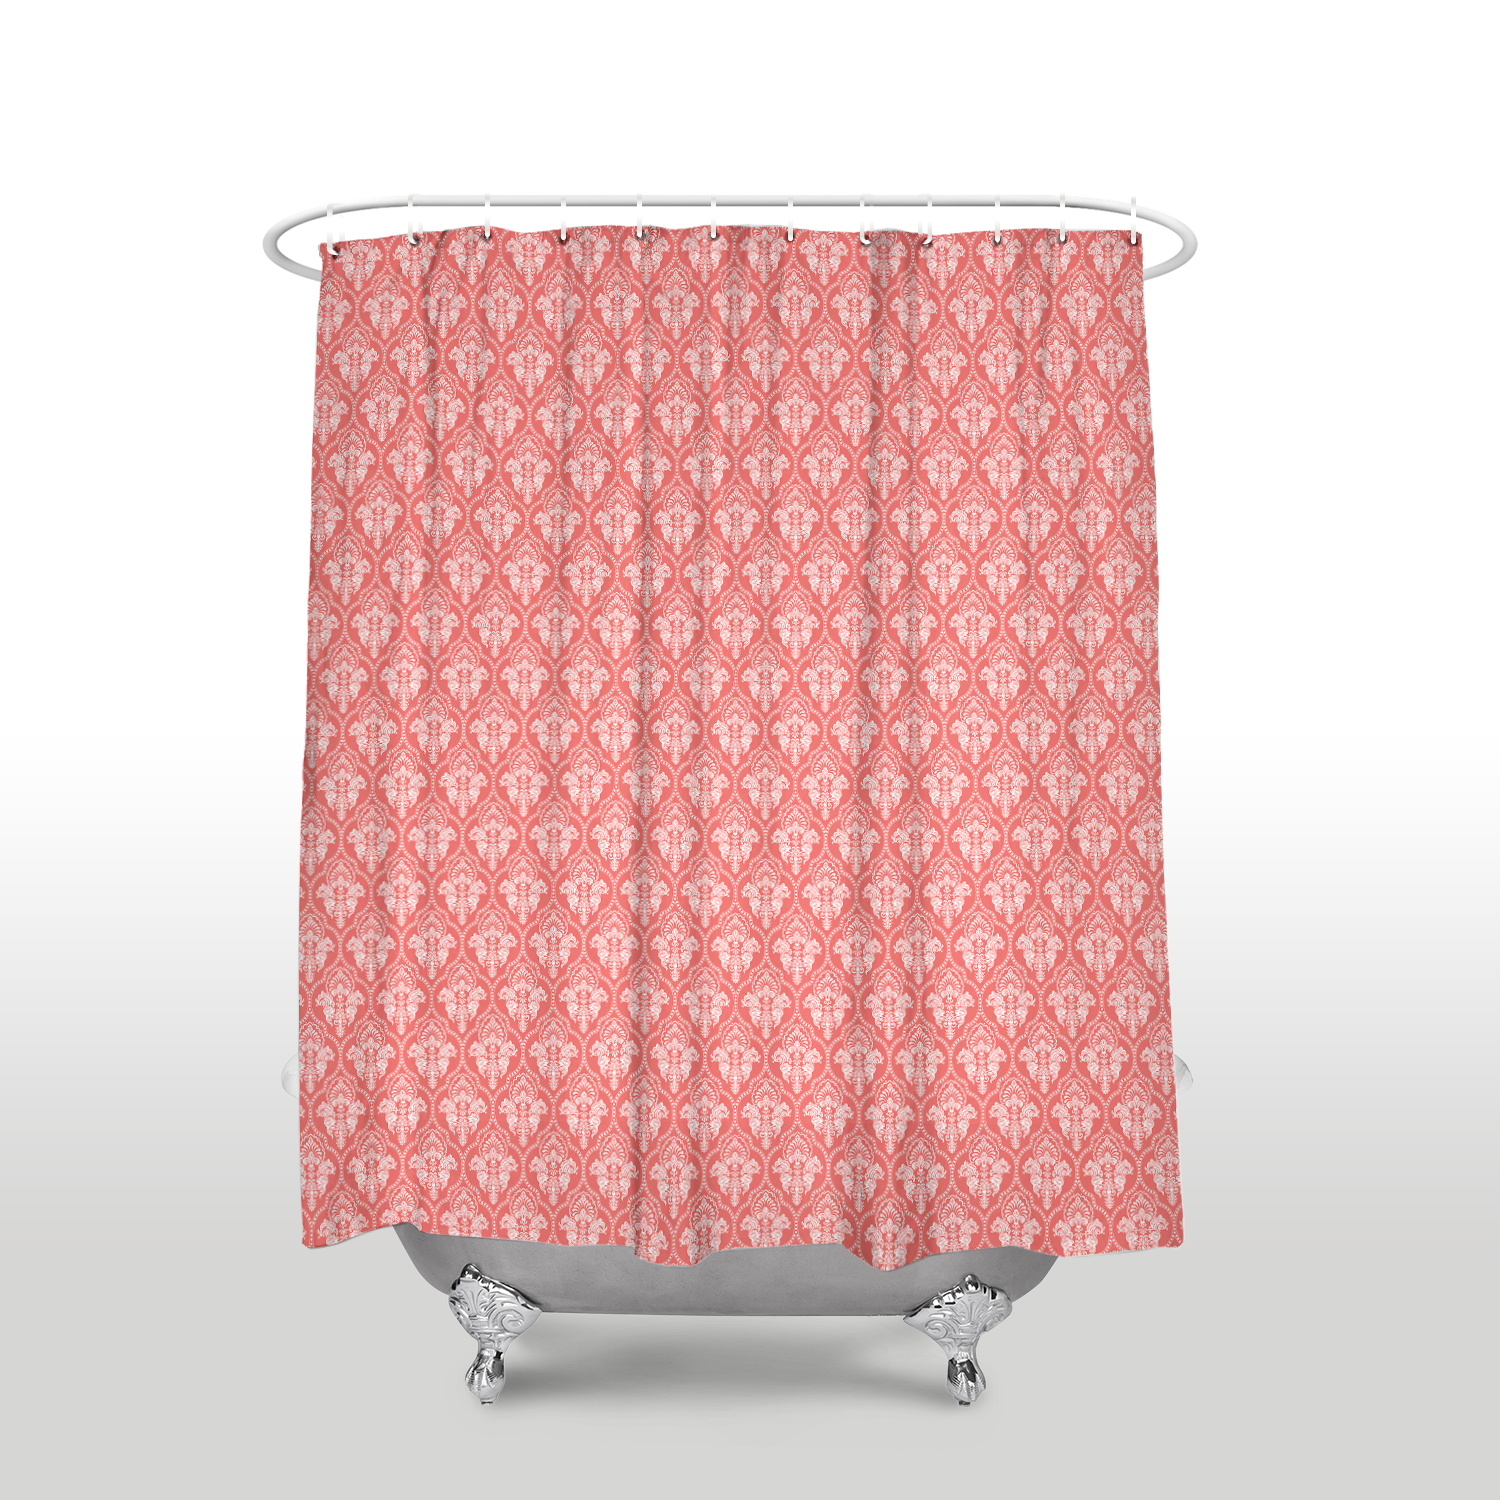 Us 16 97 45 Off New Waterproof Moroccan Design Classic Printed Shower Curtain Polyester Fabric Coral Red Bathroom Curtains For Home Decorations In